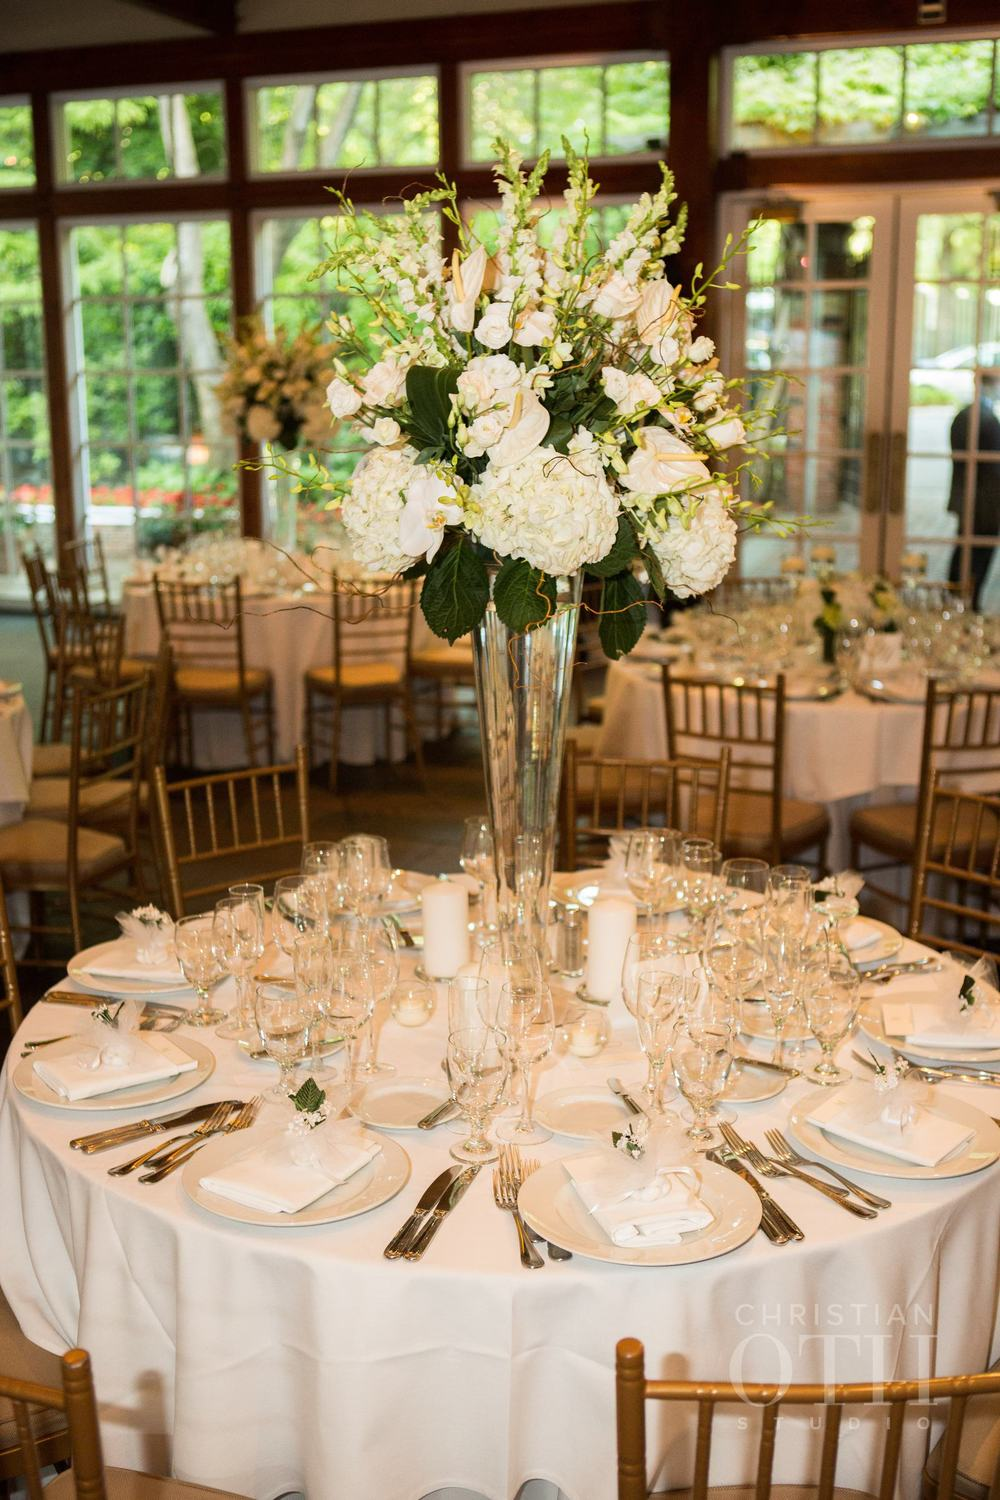 TABLE WITH TALL ELEGANT ARRANGEMENT